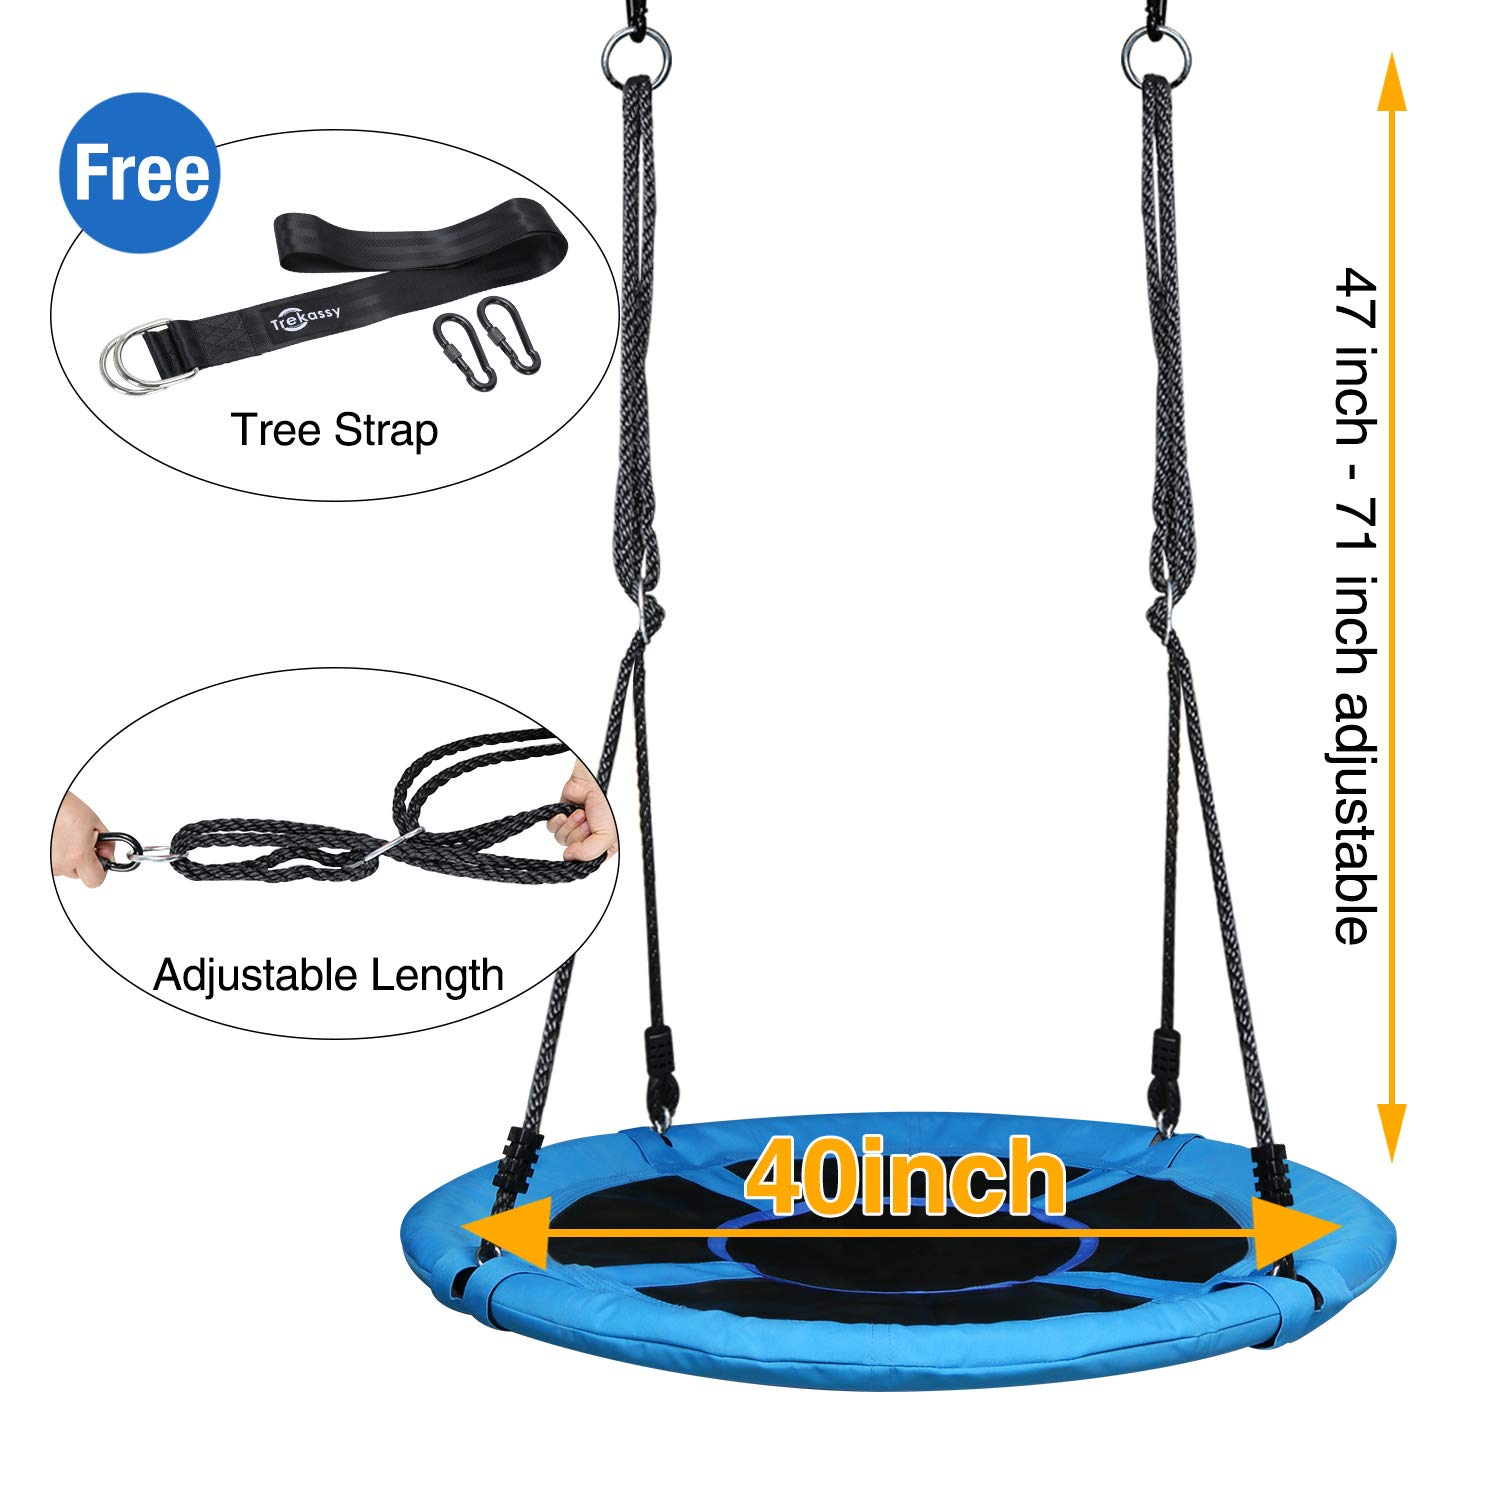 Trekassy 700lb Saucer Tree Swing for Kids Adults 40 Inch 900D Oxford Waterproof Frame with 2 Hanging Straps by Trekassy (Image #2)